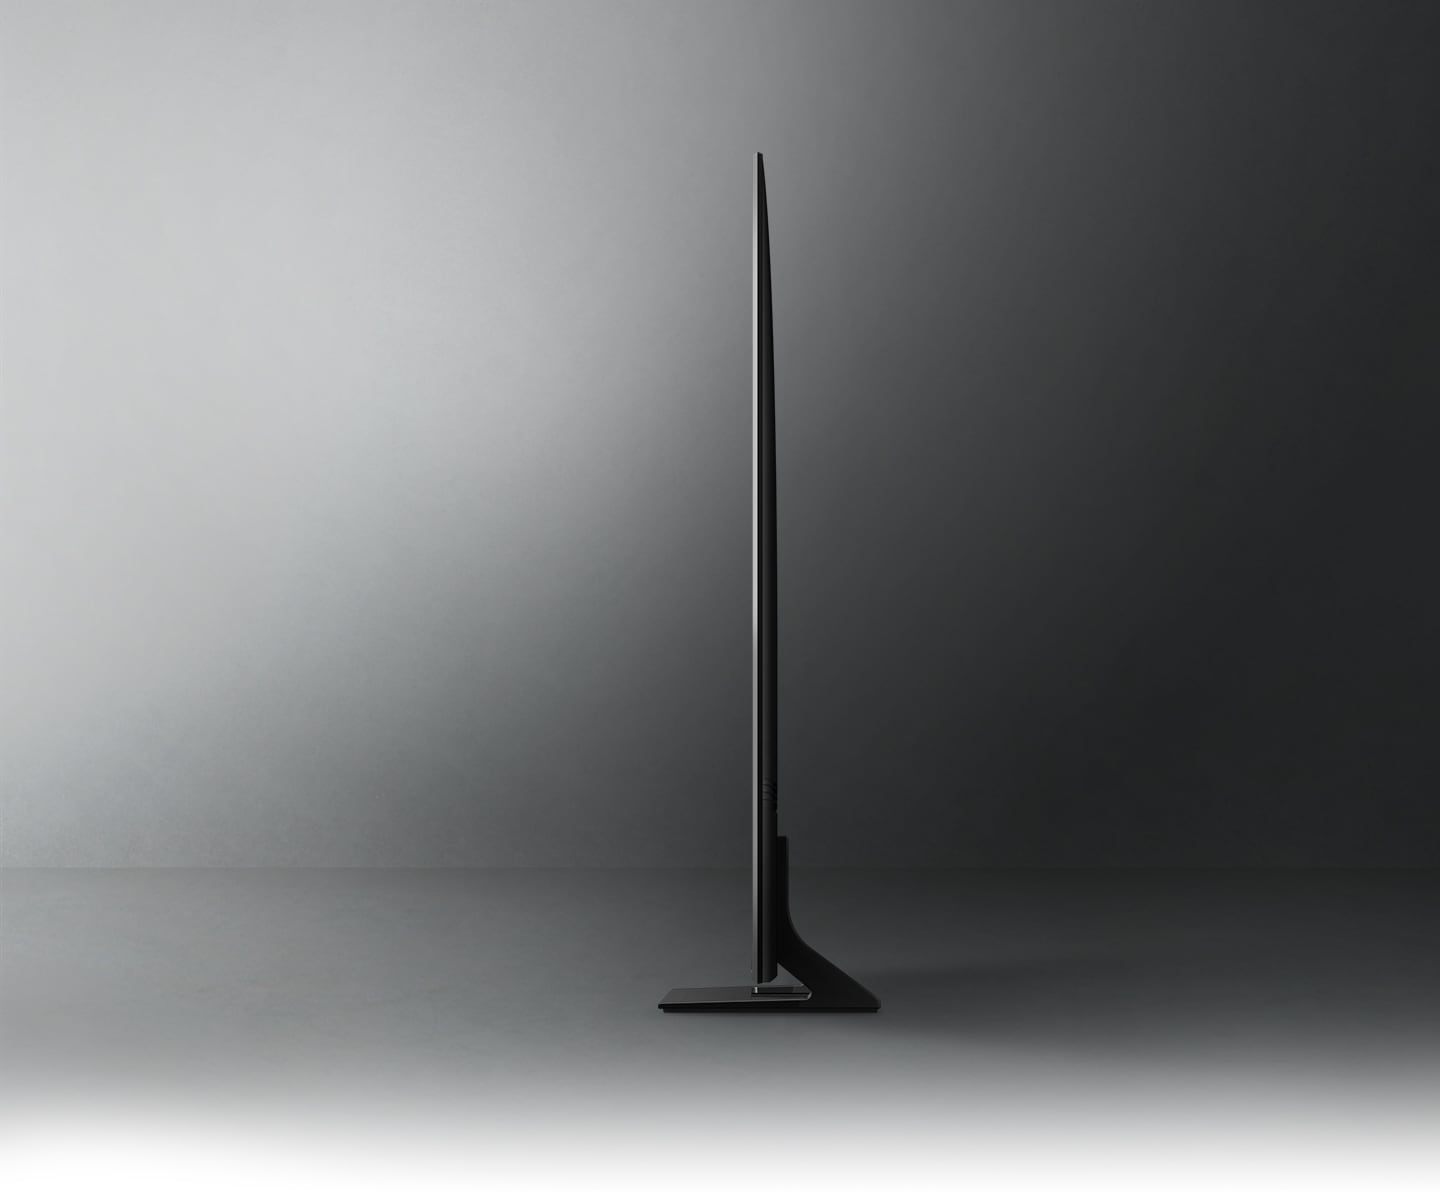 Profile view of Crystal UHD TV shows ultra slim design of Crystal UHD TV AirSlim.